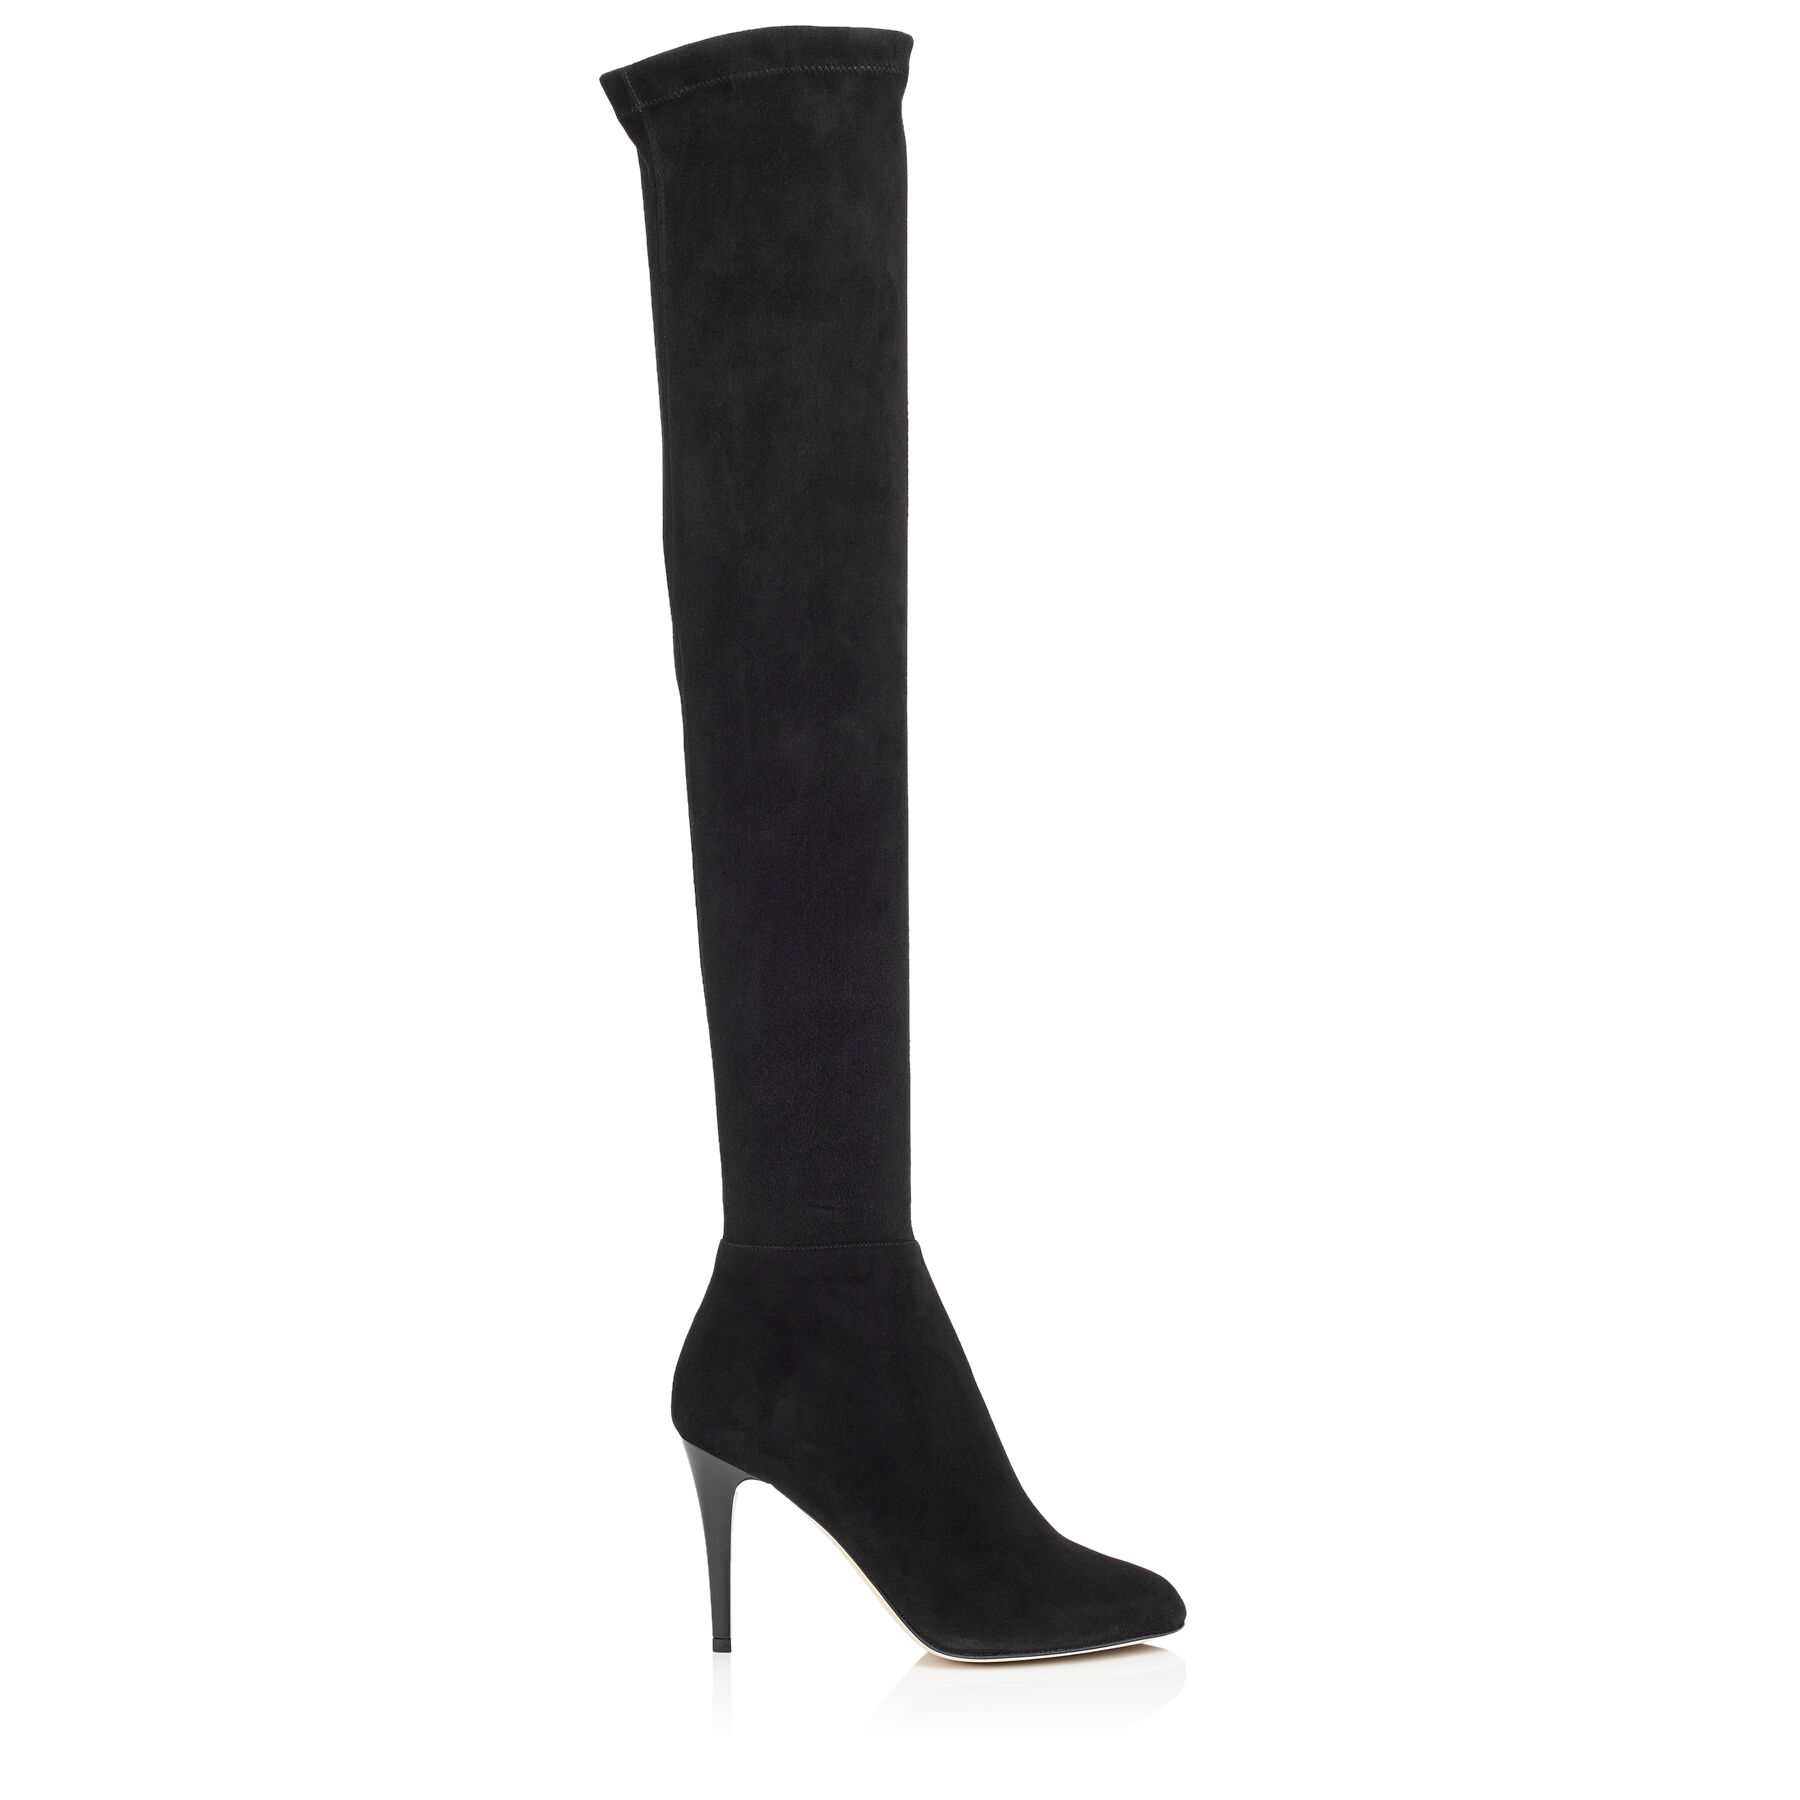 Stretch Suede Over-the-Knee Boots| TONI